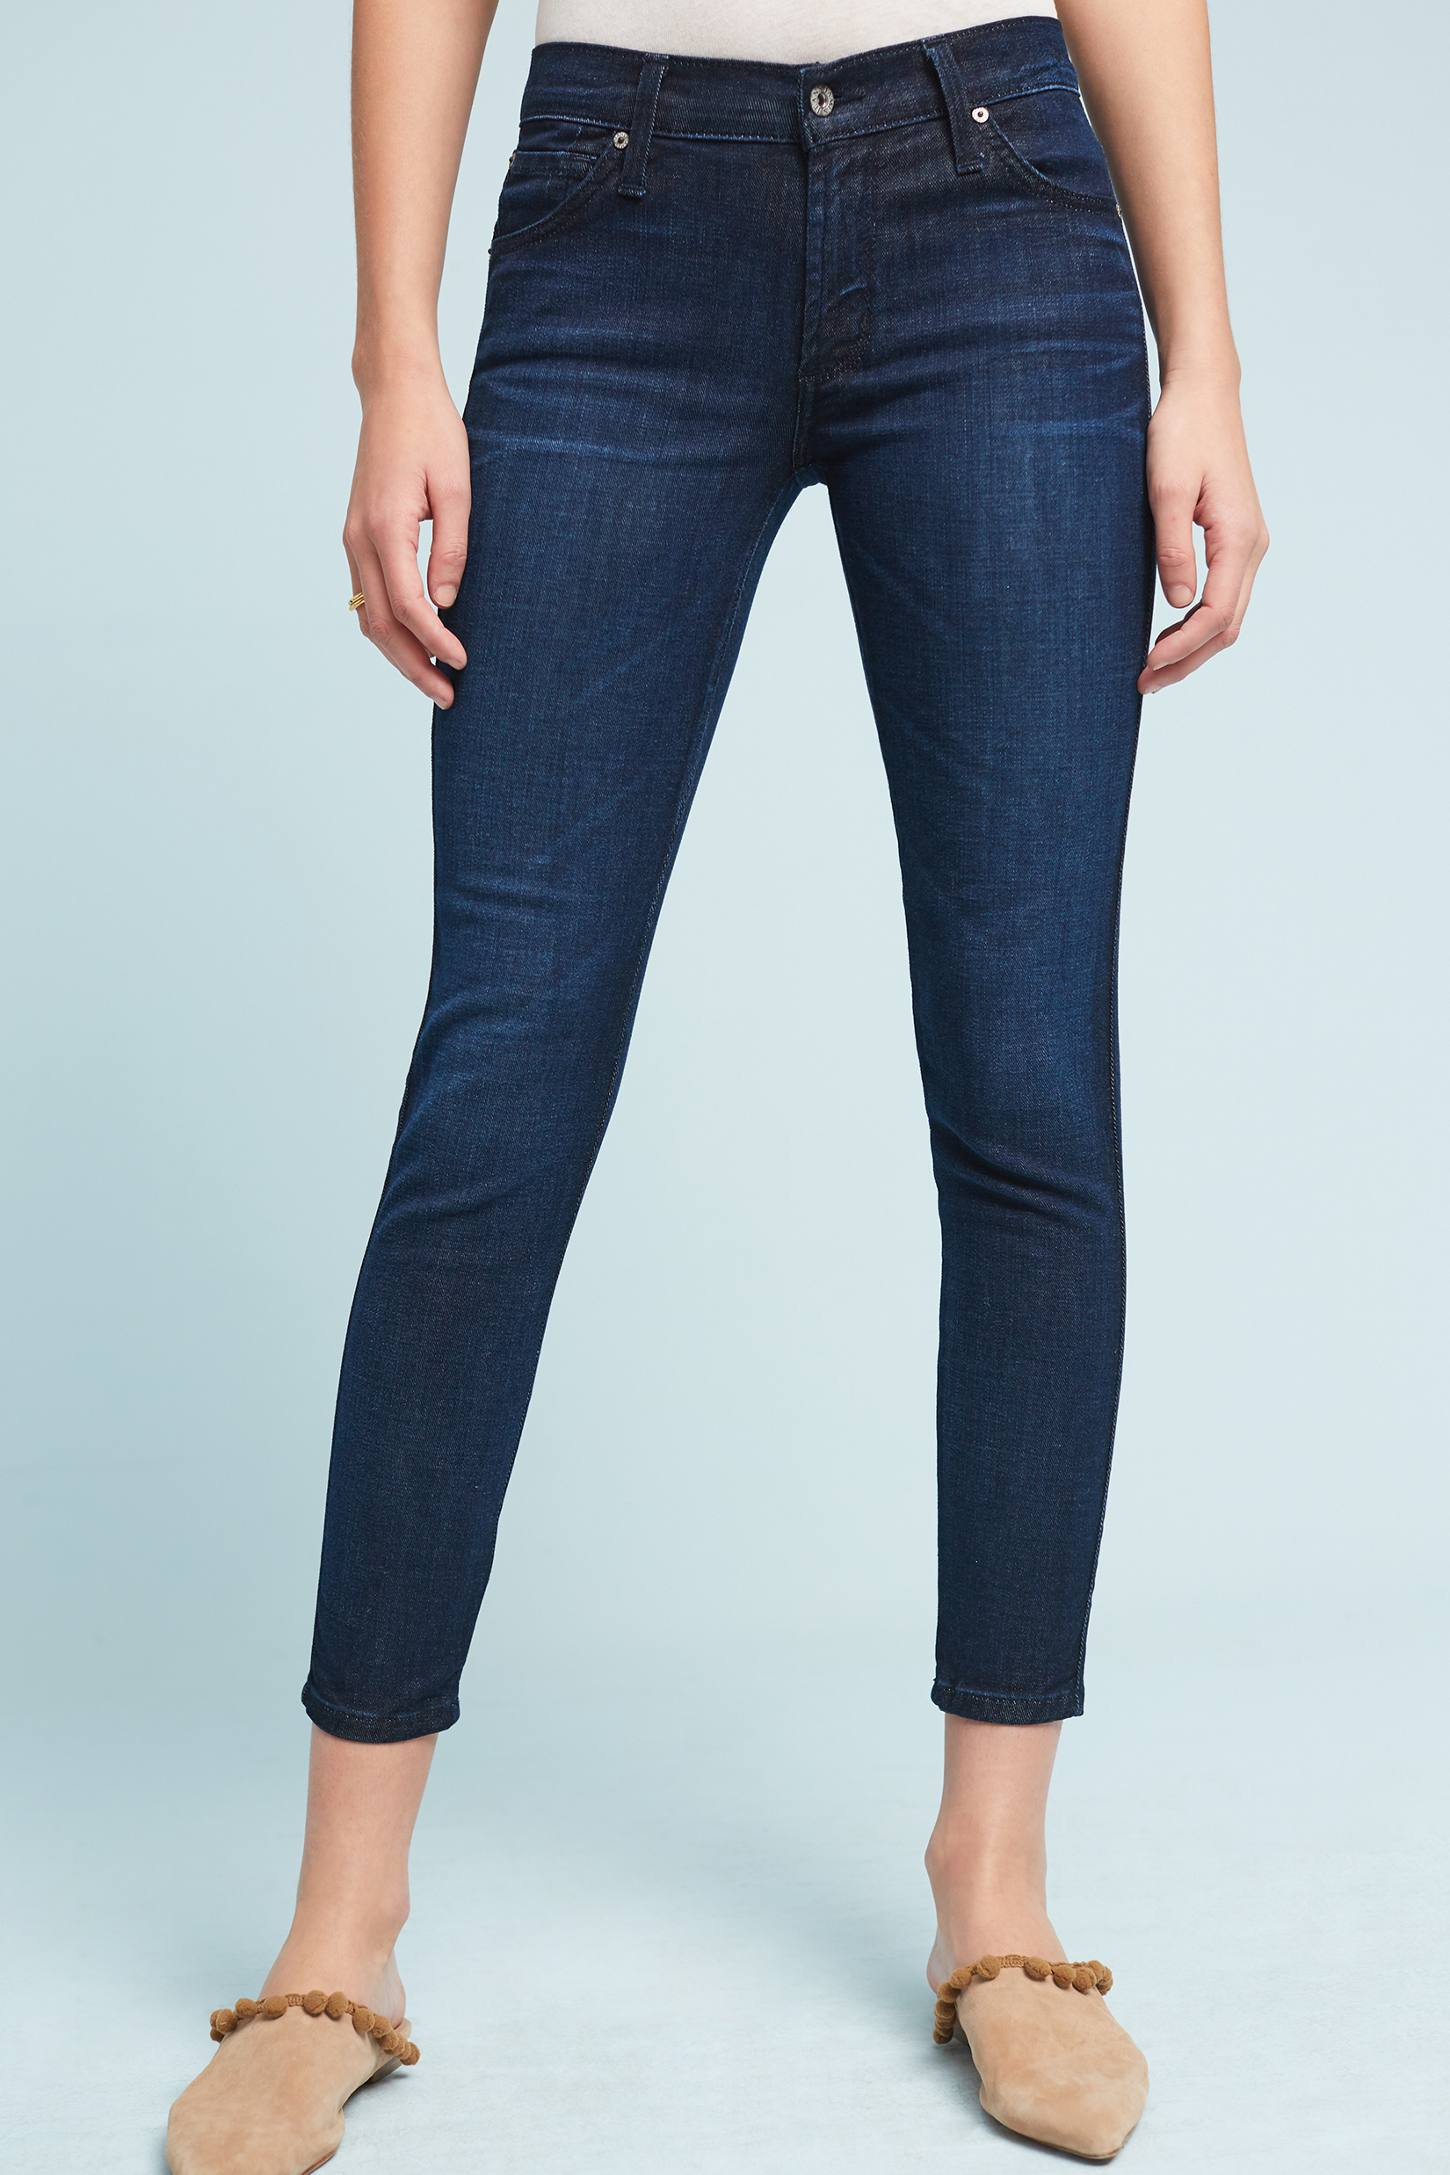 Slide View: 1: James Jeans Twiggy Mid-Rise Skinny Ankle Petite Jeans